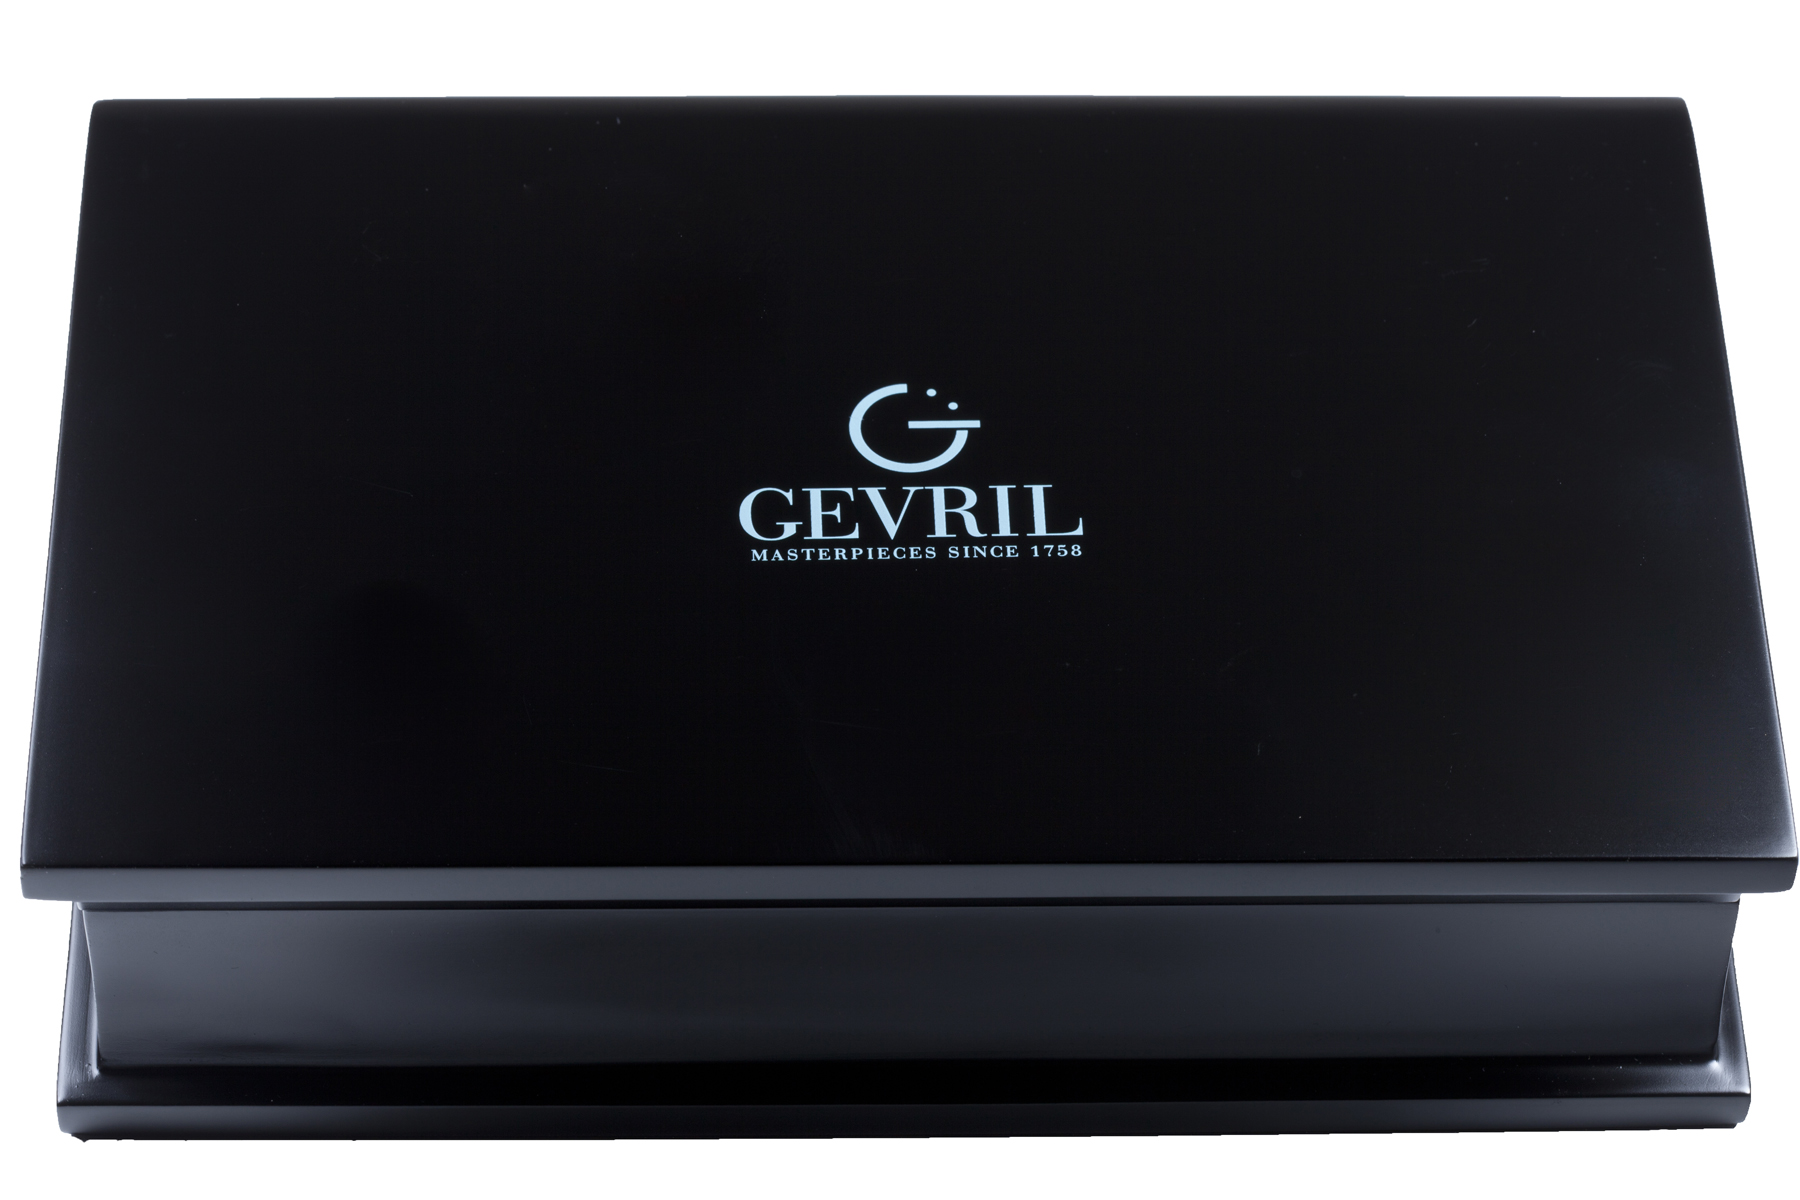 Gevril Pen Box Masterpieces Since 1758